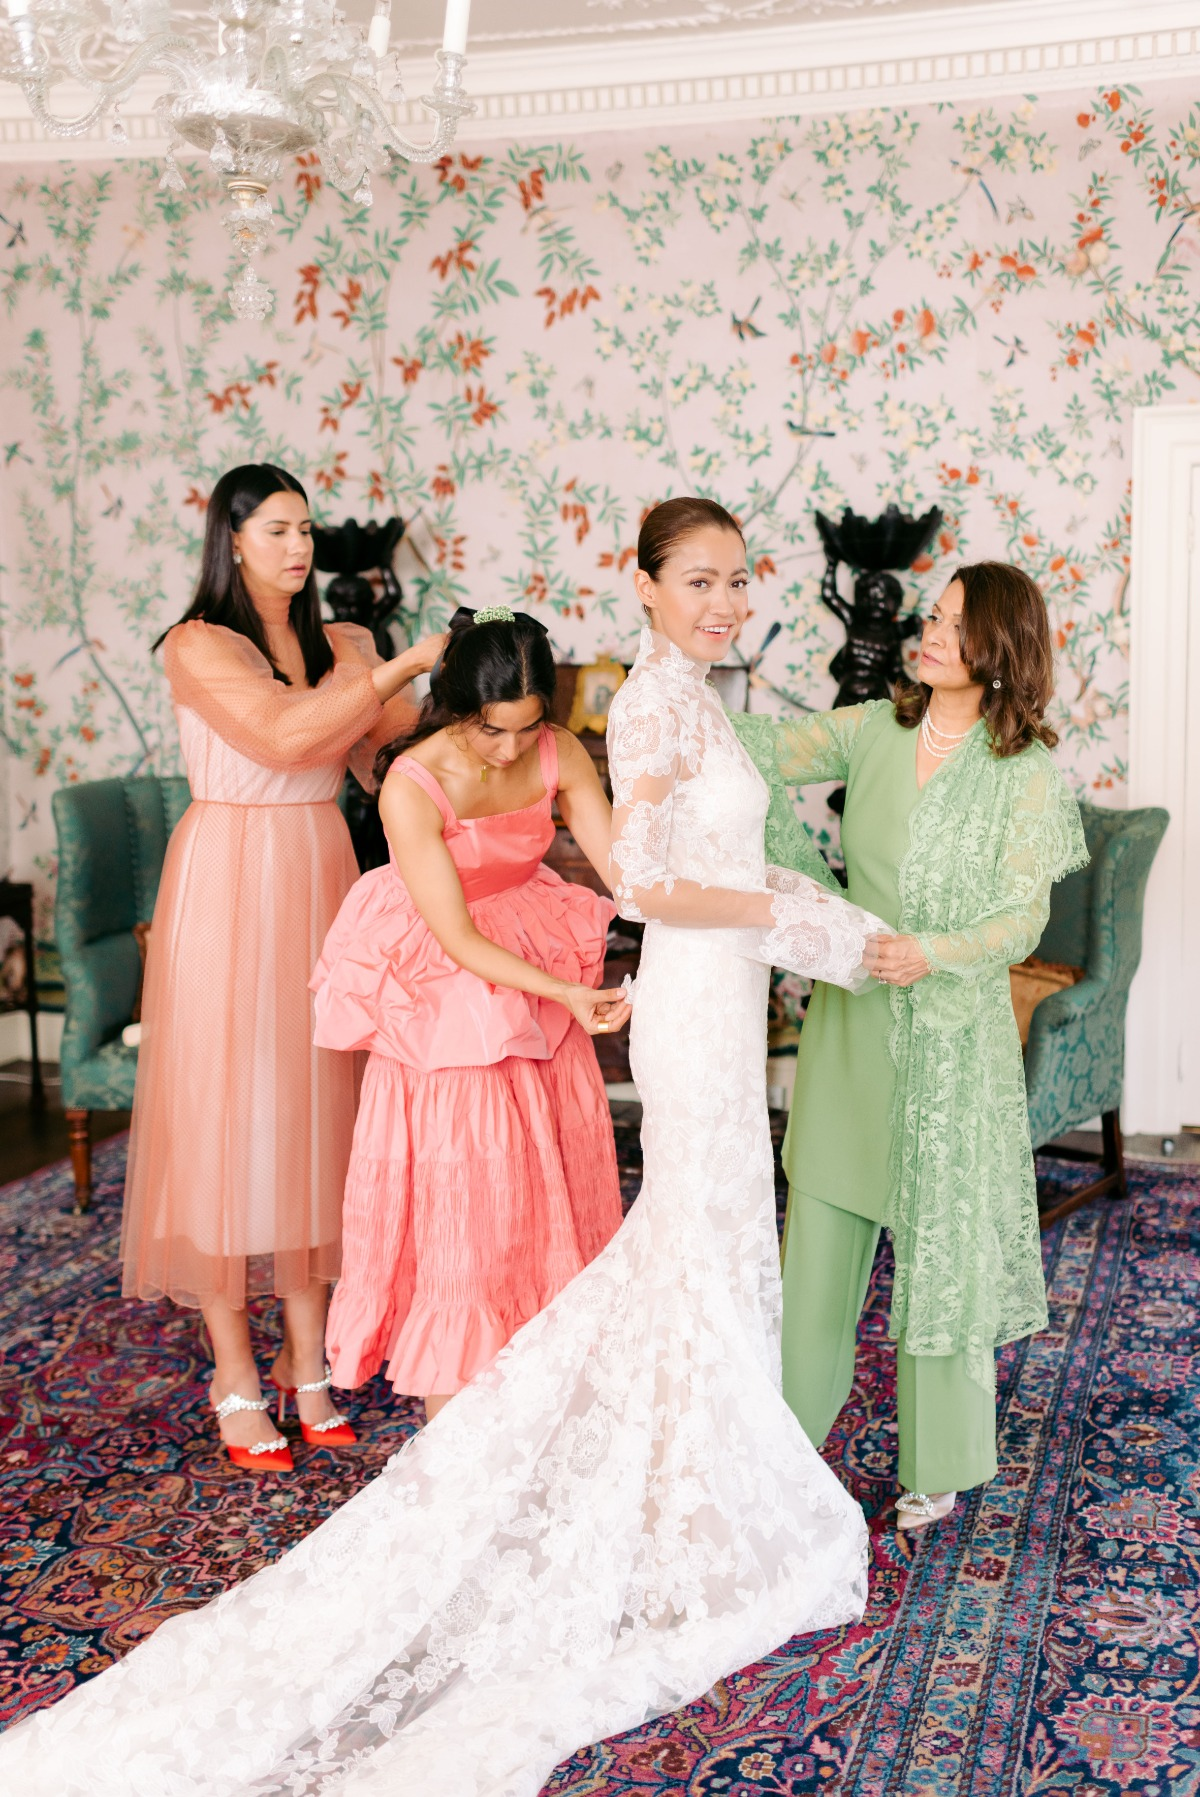 getting wedding ready with family photo ideas